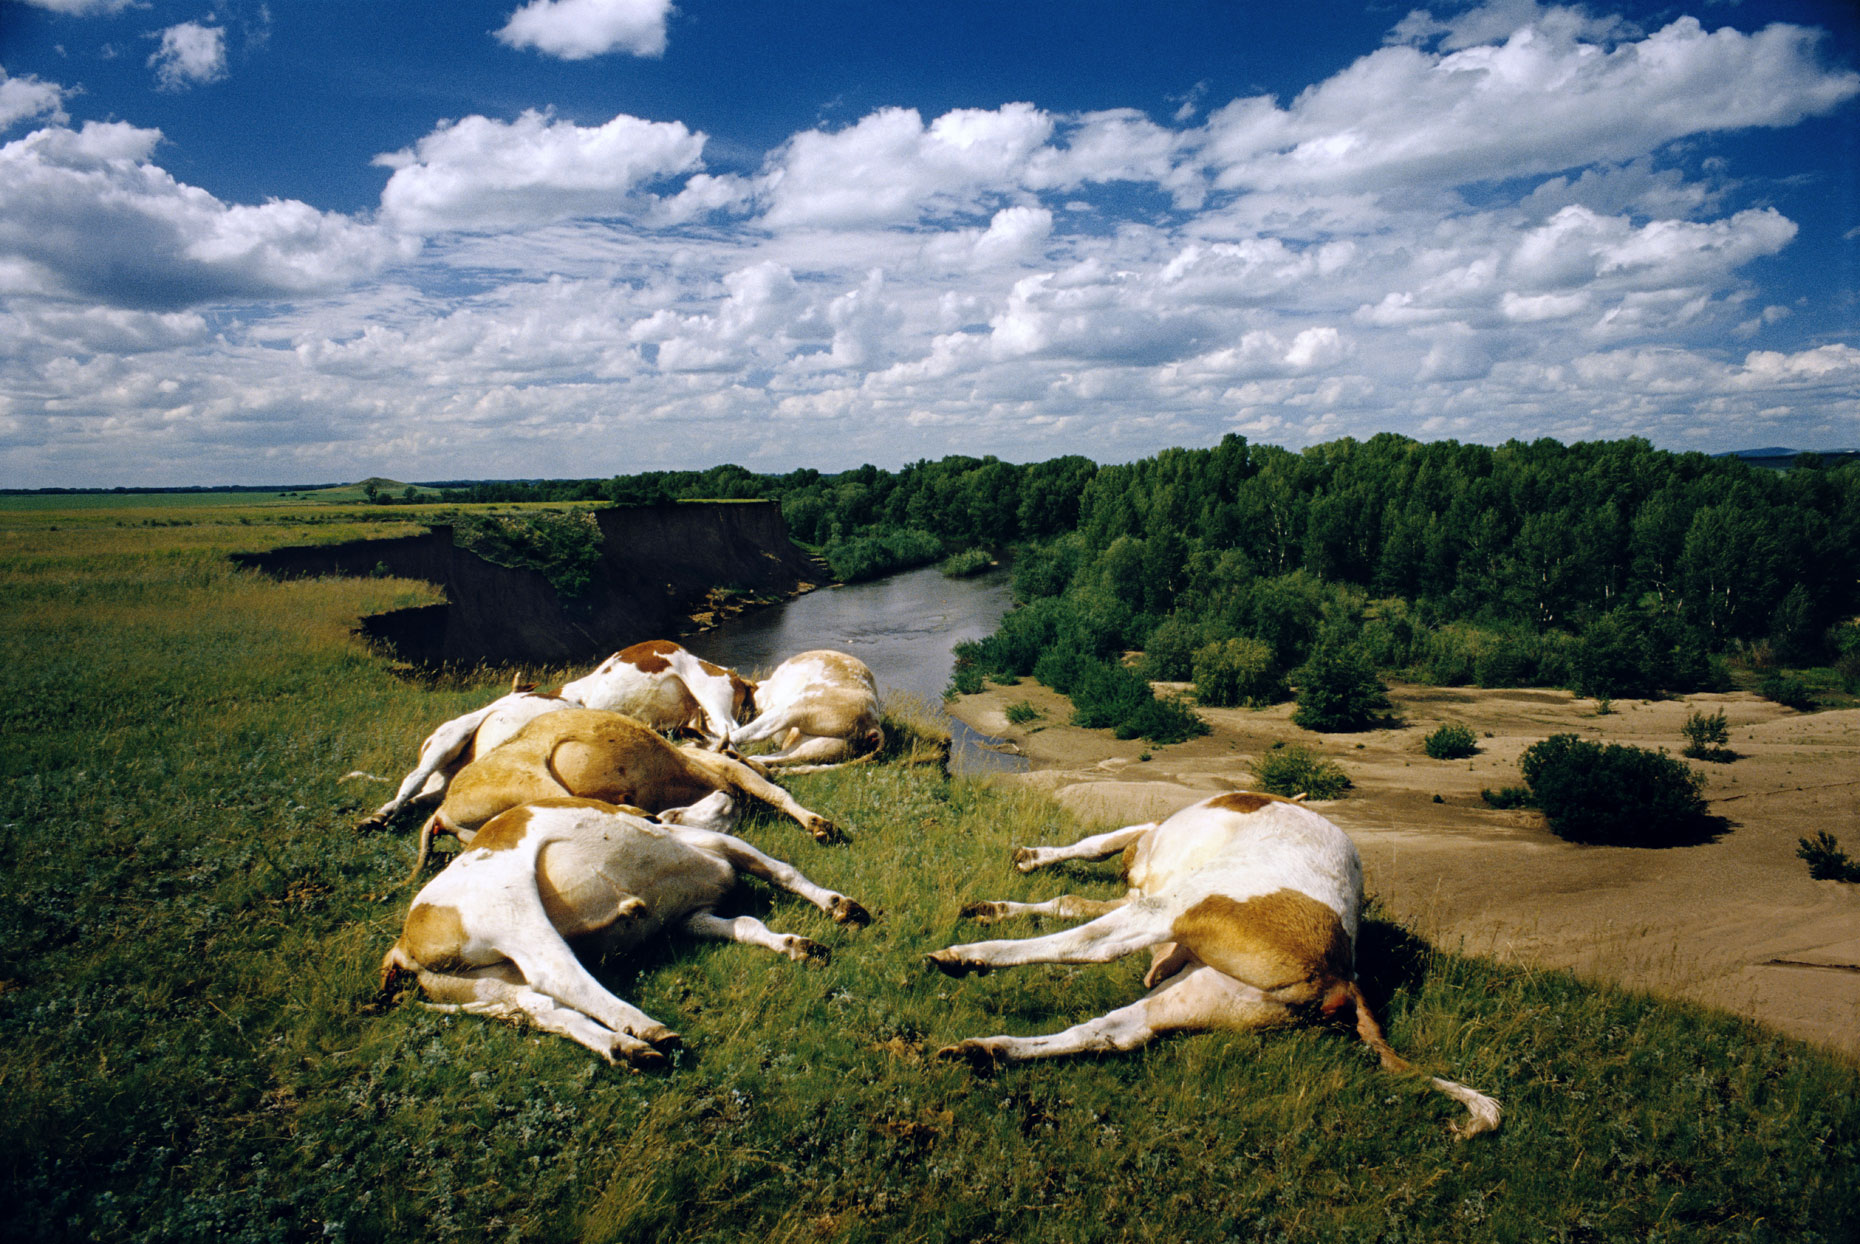 RUSSIA. Altai Territory. 2000. Dead cows lying on a cliff. The local population claim whole herds of cattle and sheep regularly die as a result of rocket fuel poisoned soil.